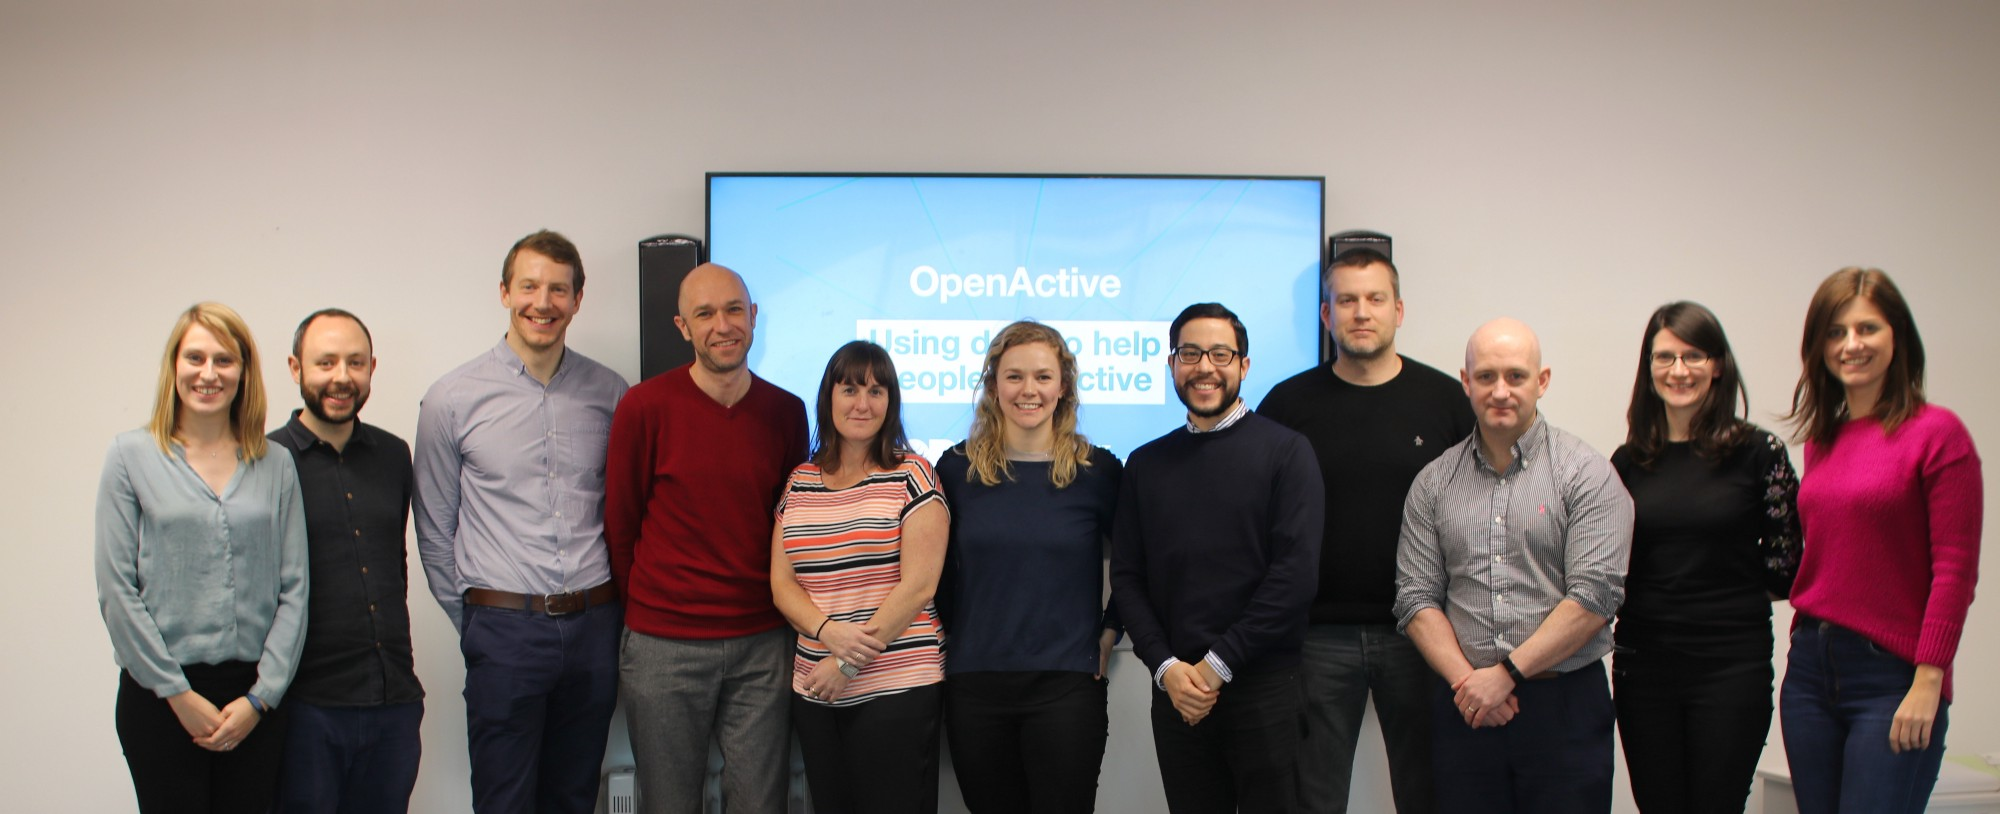 Group picture of 10 OpenActive Champions